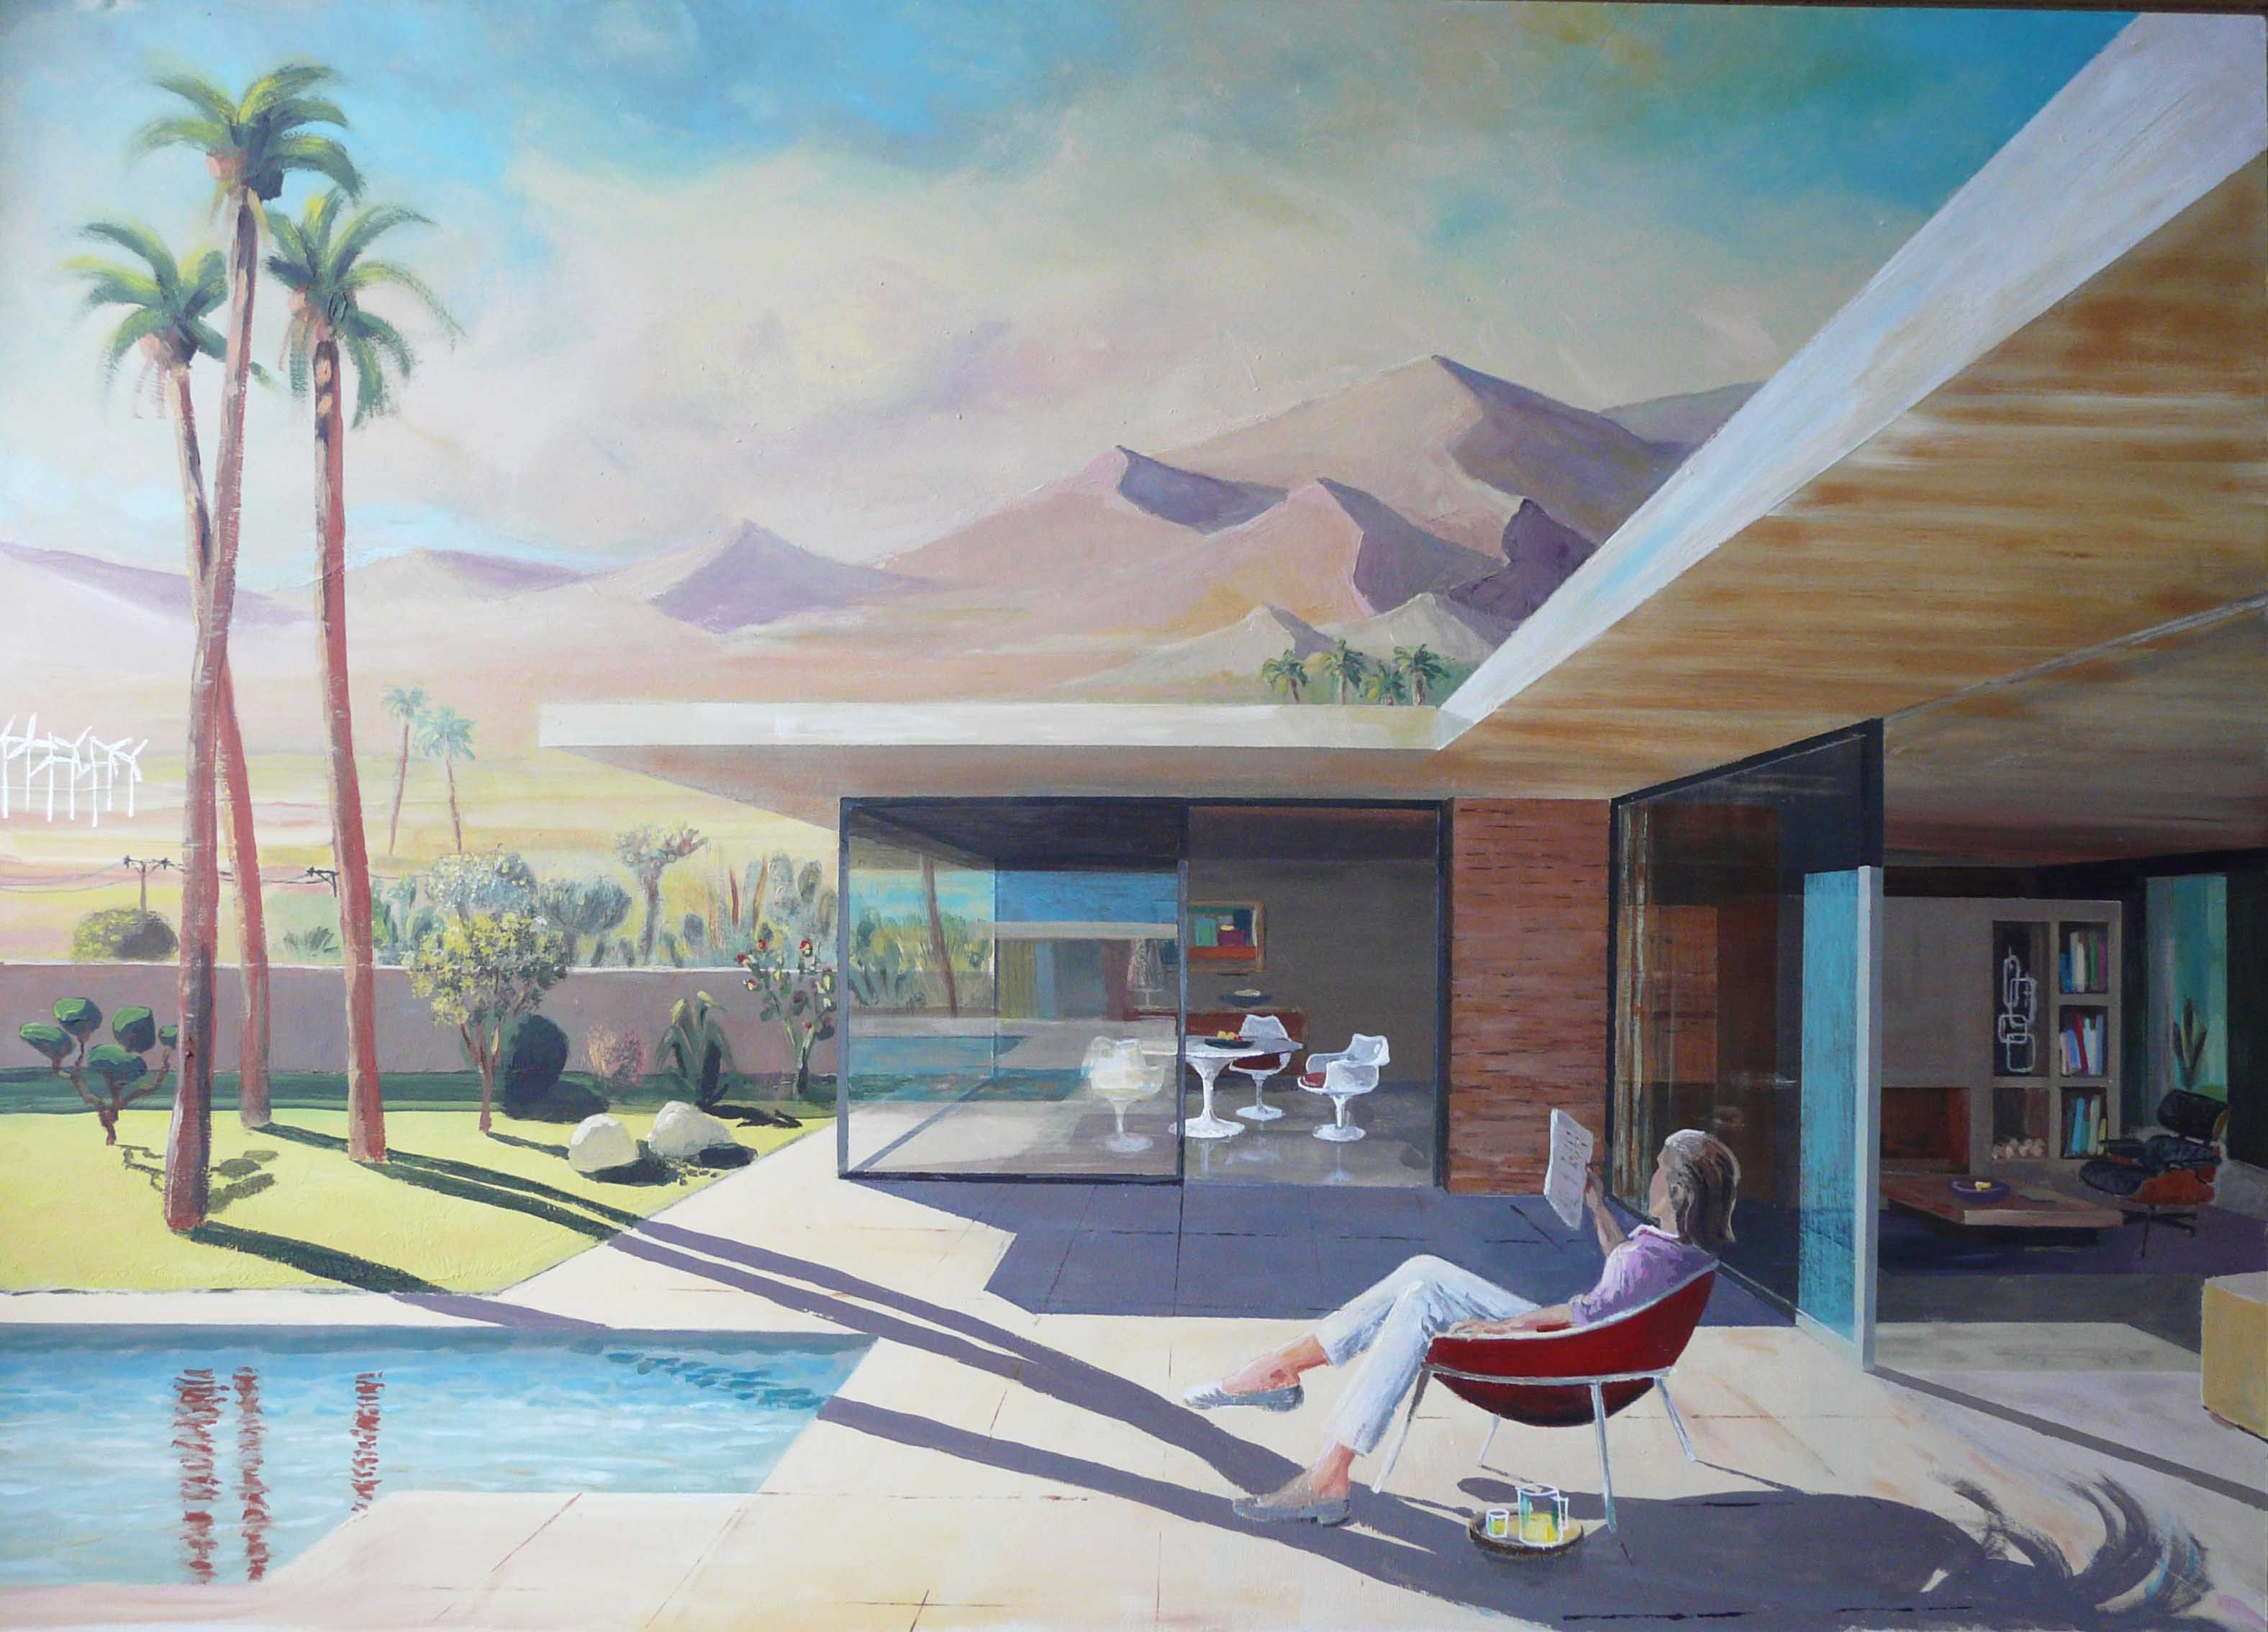 House Paintings mid-century modern house painting - william f. cody architect